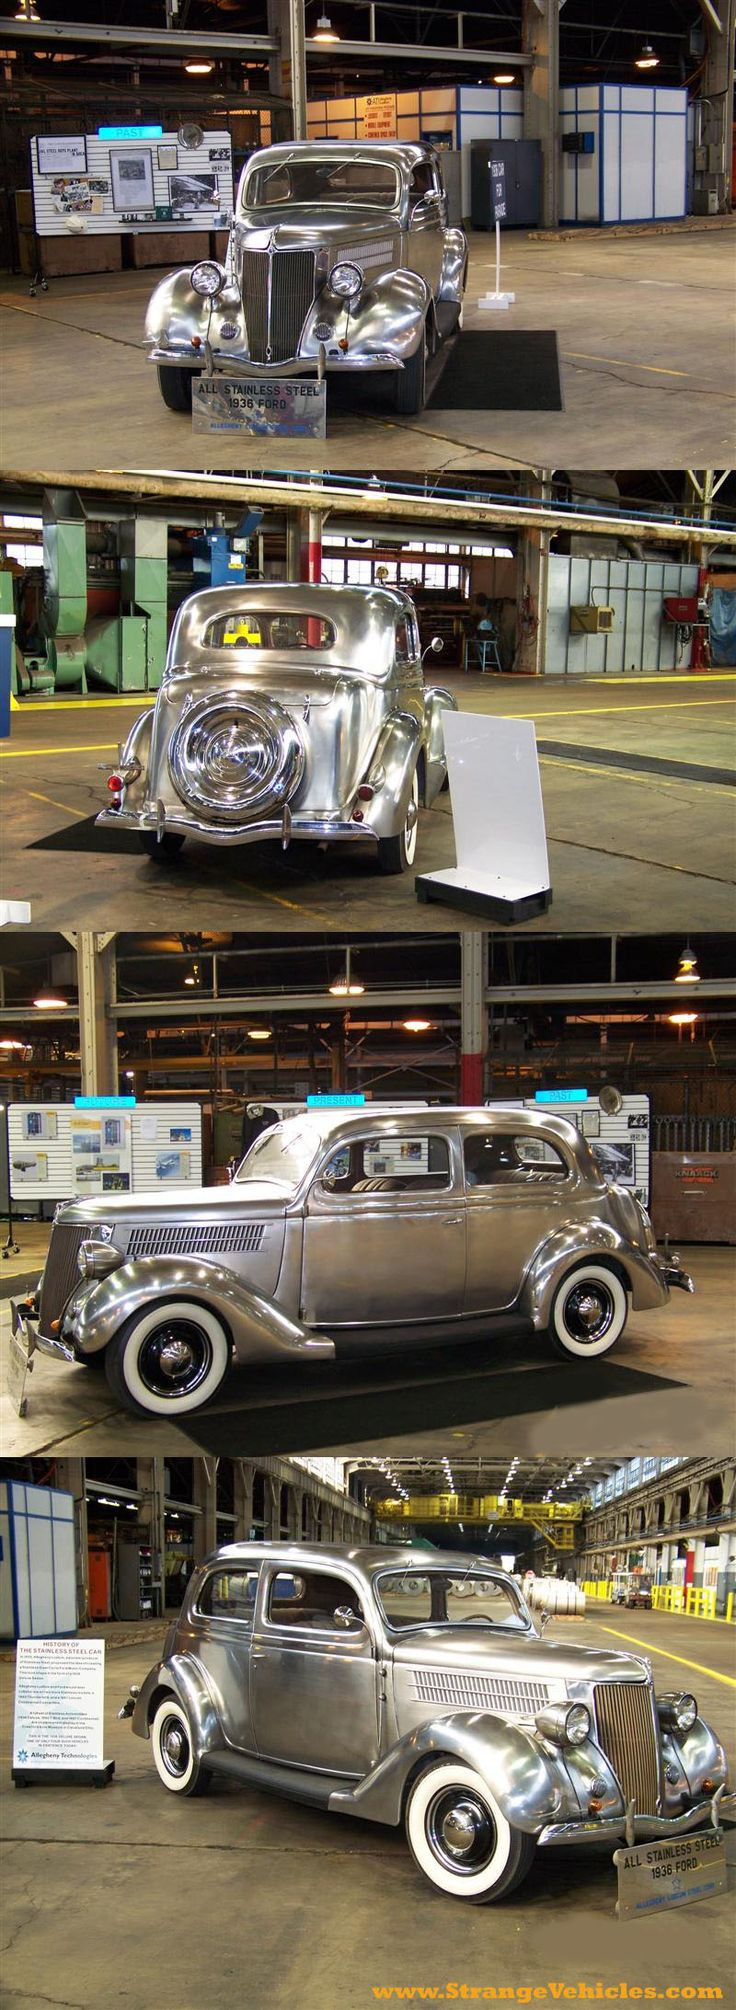 1936 Stainless Steel Ford....Brought to you by House of Insurance in #EugeneOregon call for a  free price  comparison 541-345-4191.